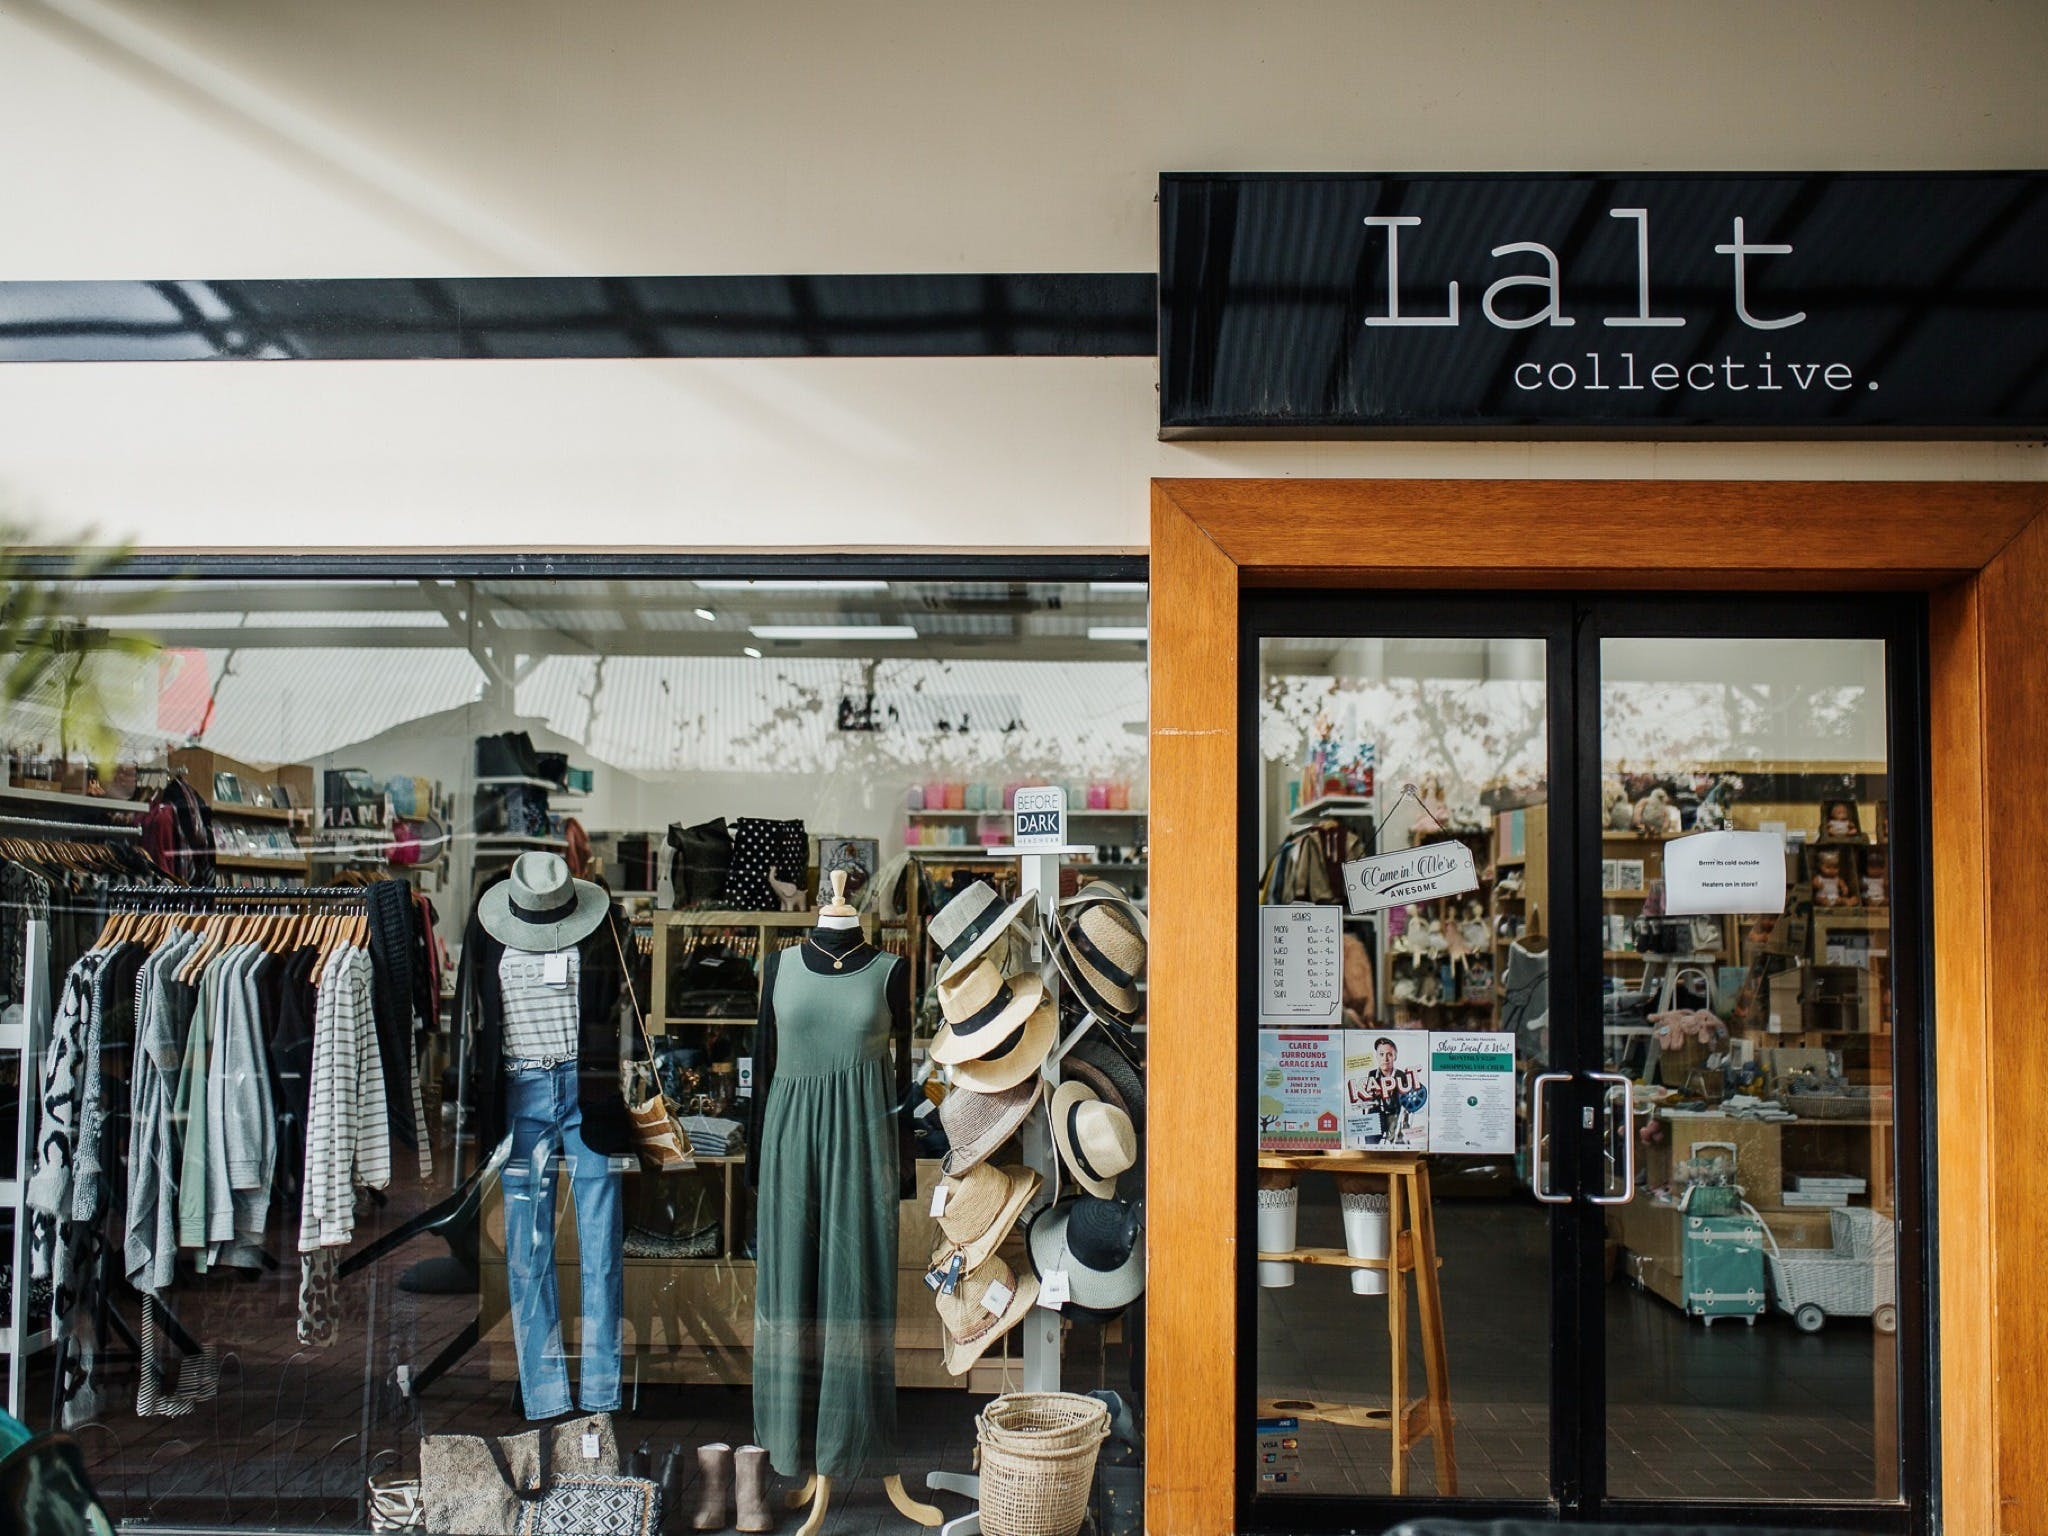 Lalt Collective - Accommodation in Bendigo